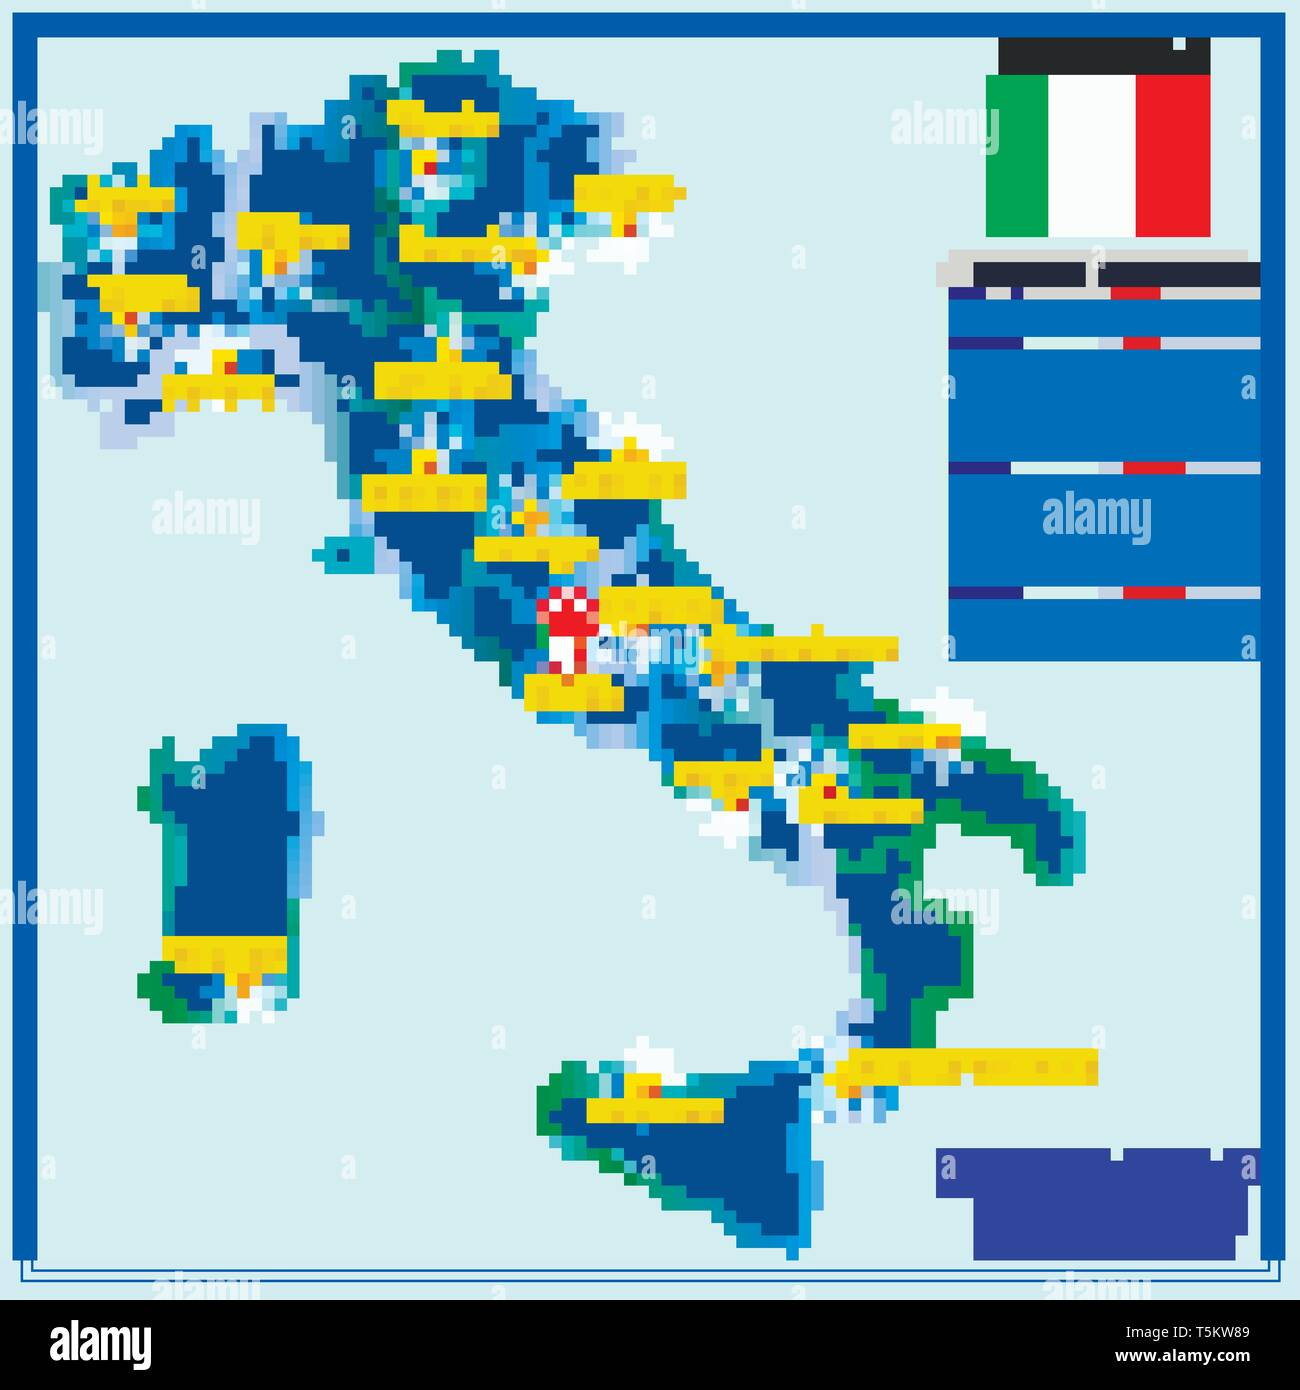 Regions Of Italy Map With Cities.Map Of Italy With Infographic Illustration With Italian